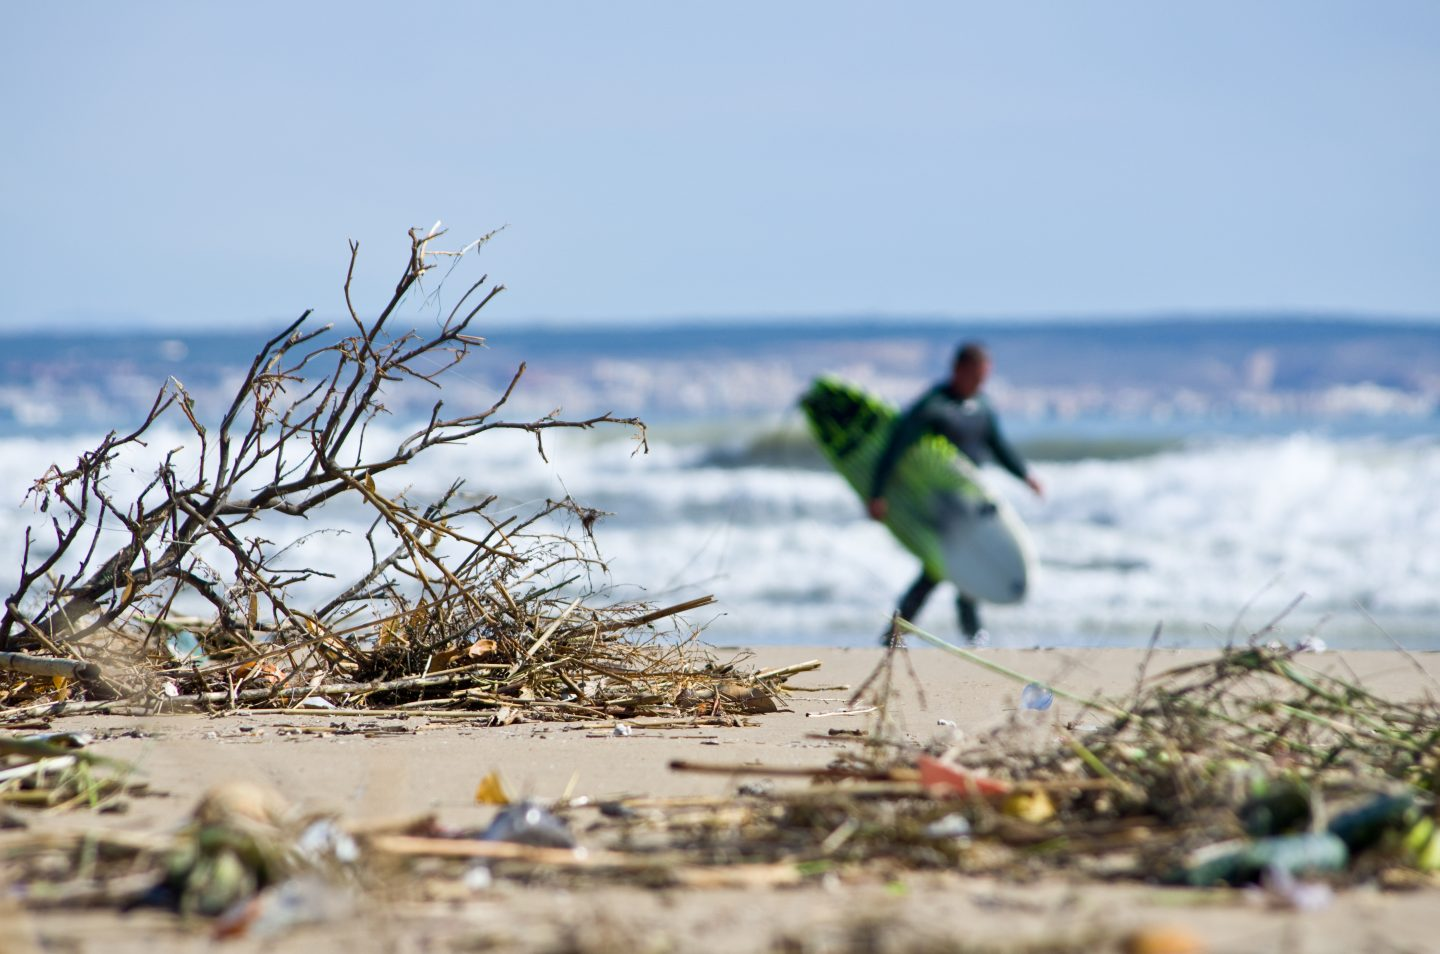 Looking at a beach with a surfer running in the background_ Photo of blurred beach_ trash_pollution_activist